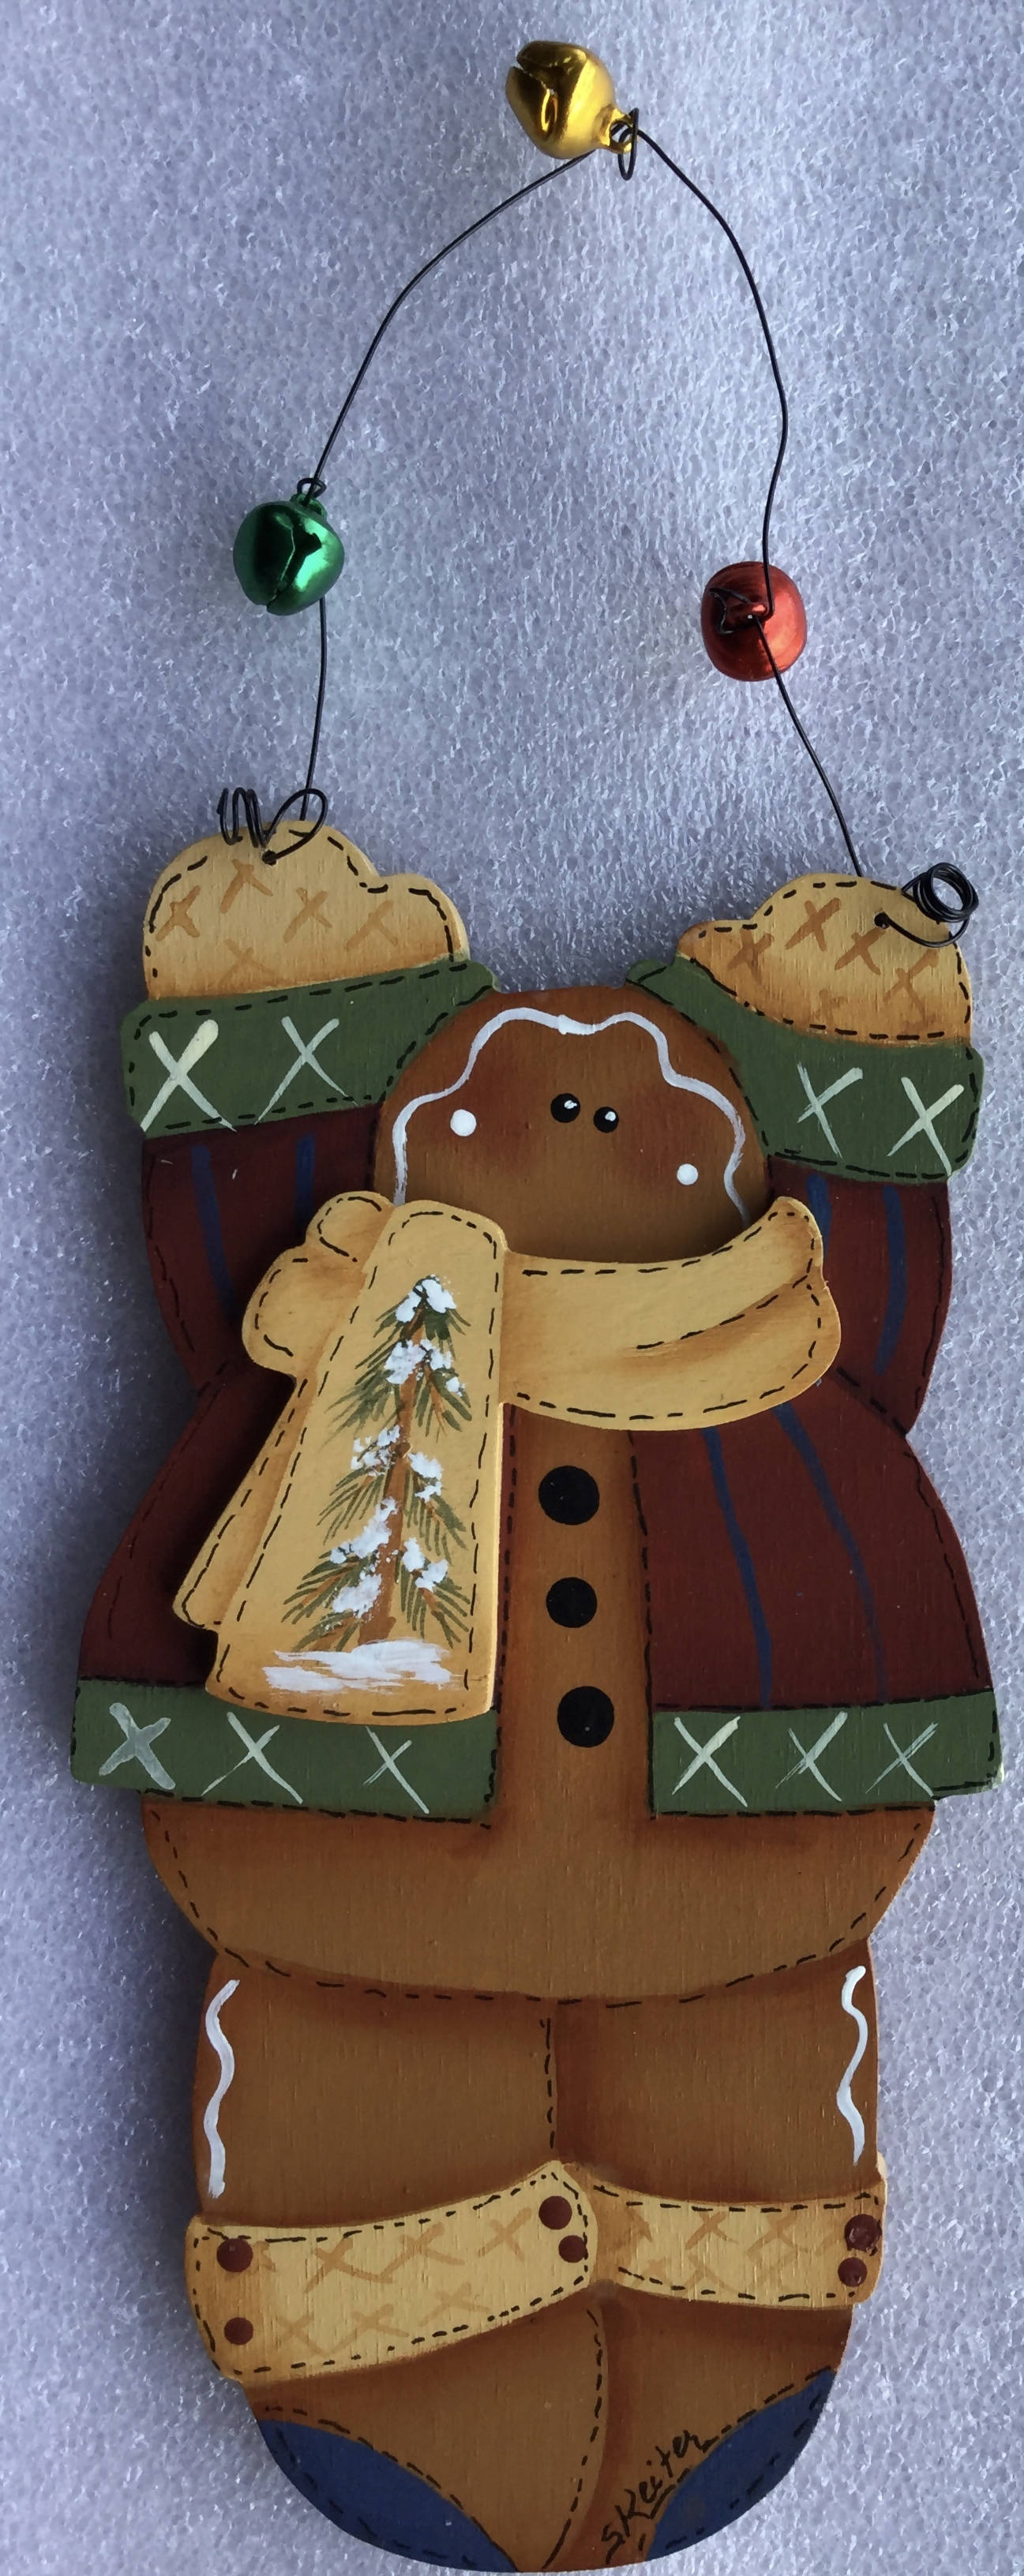 Wooden cut out Christmas Ornament Hand Painted with A Gingerbread Boy